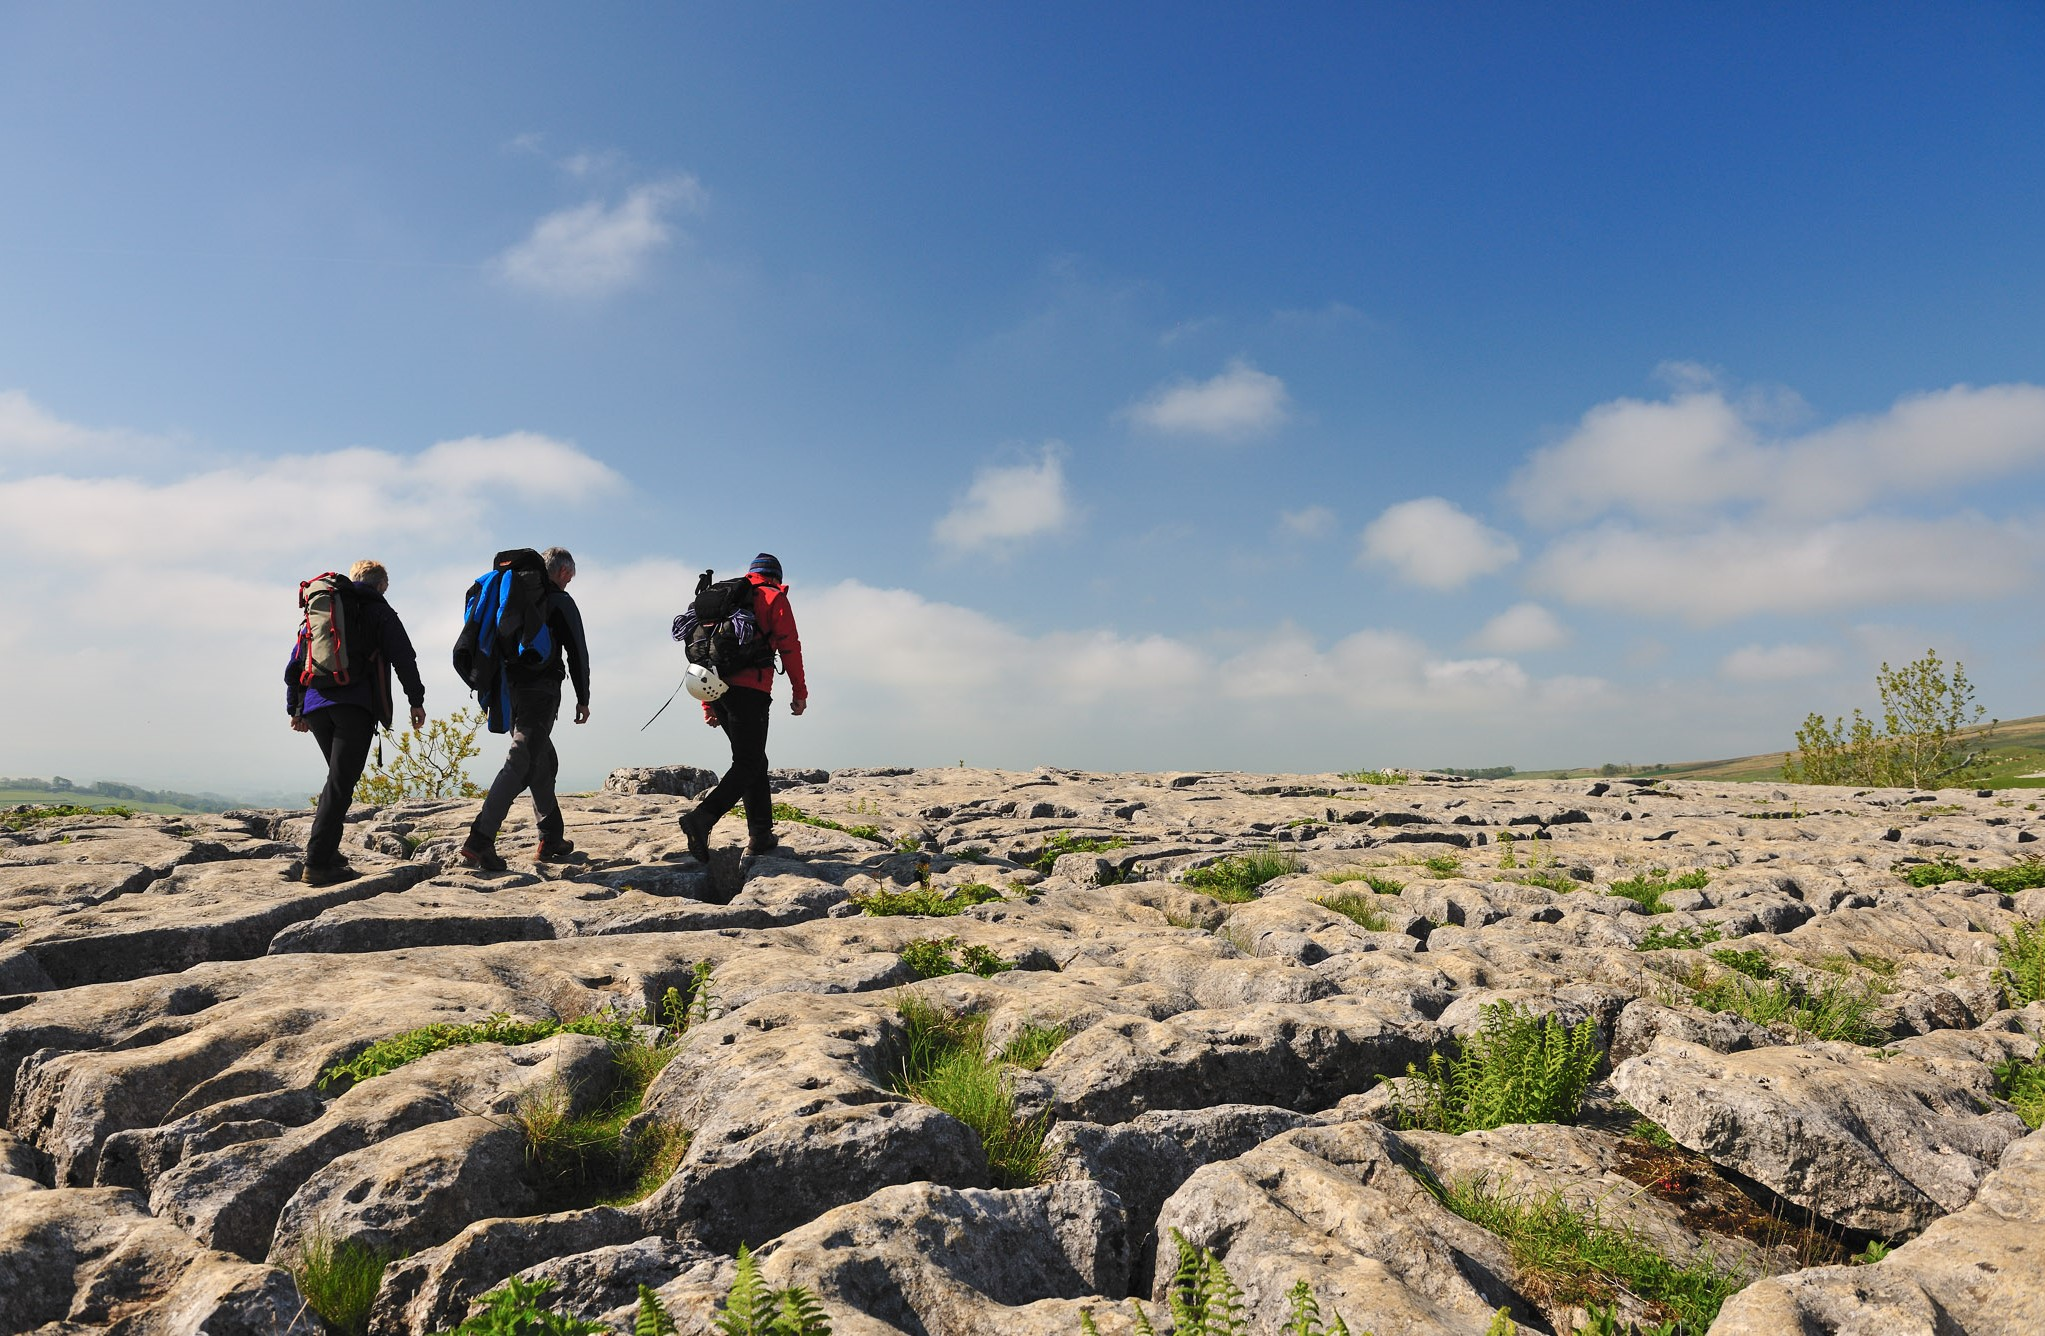 Walkers on the limestone pavement above the cliffs of Malham Cove